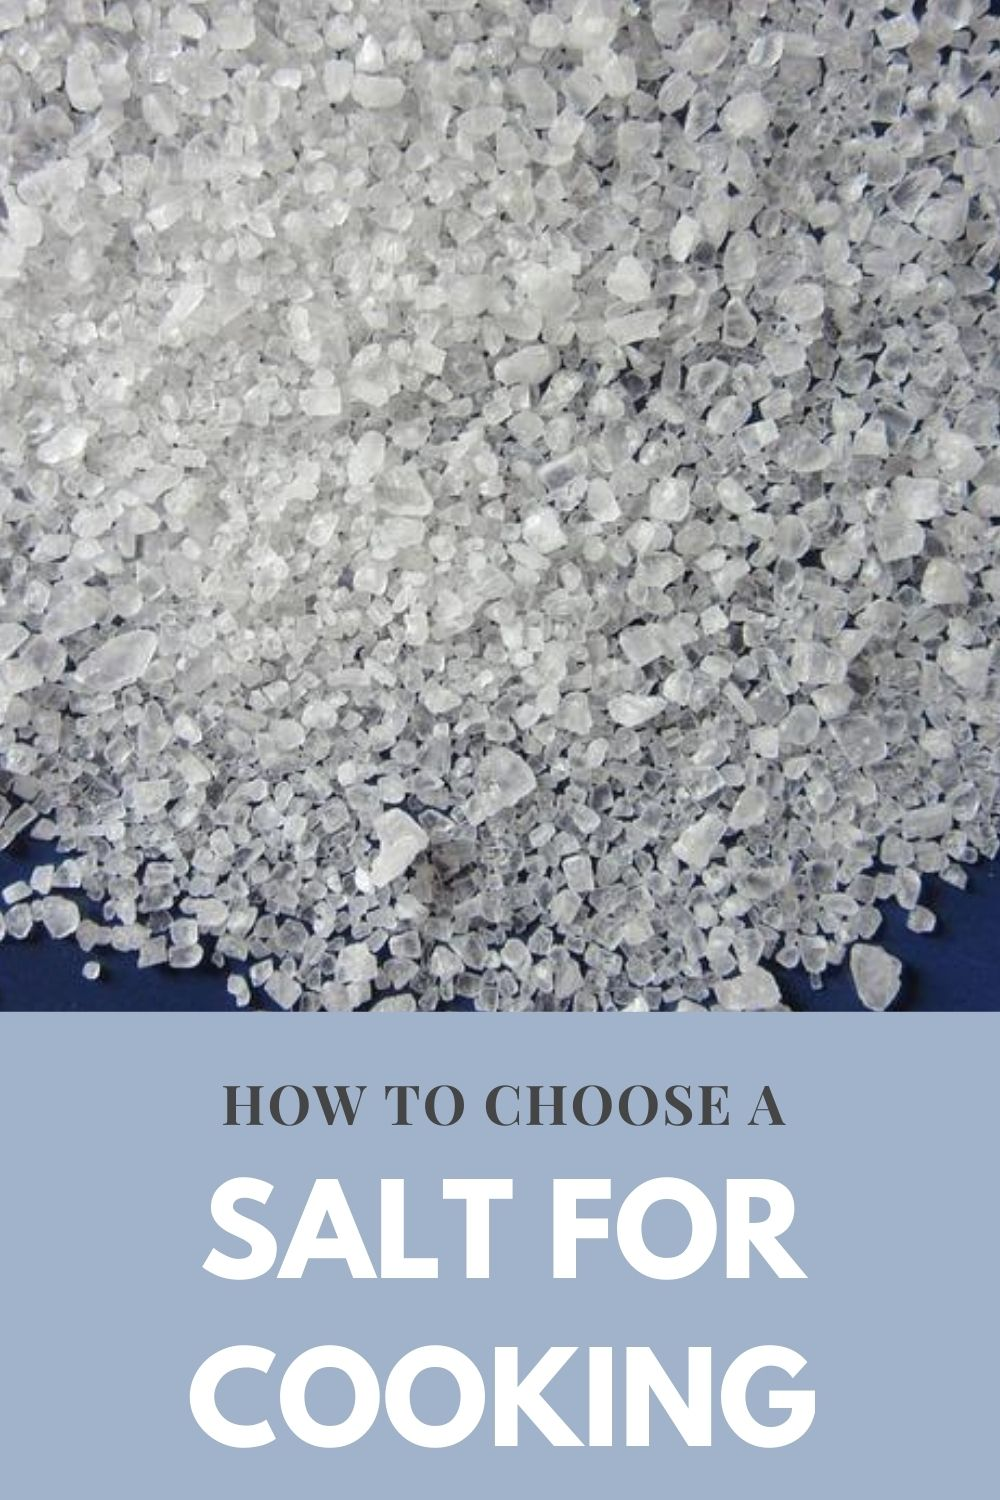 How to choose a salt for cooking